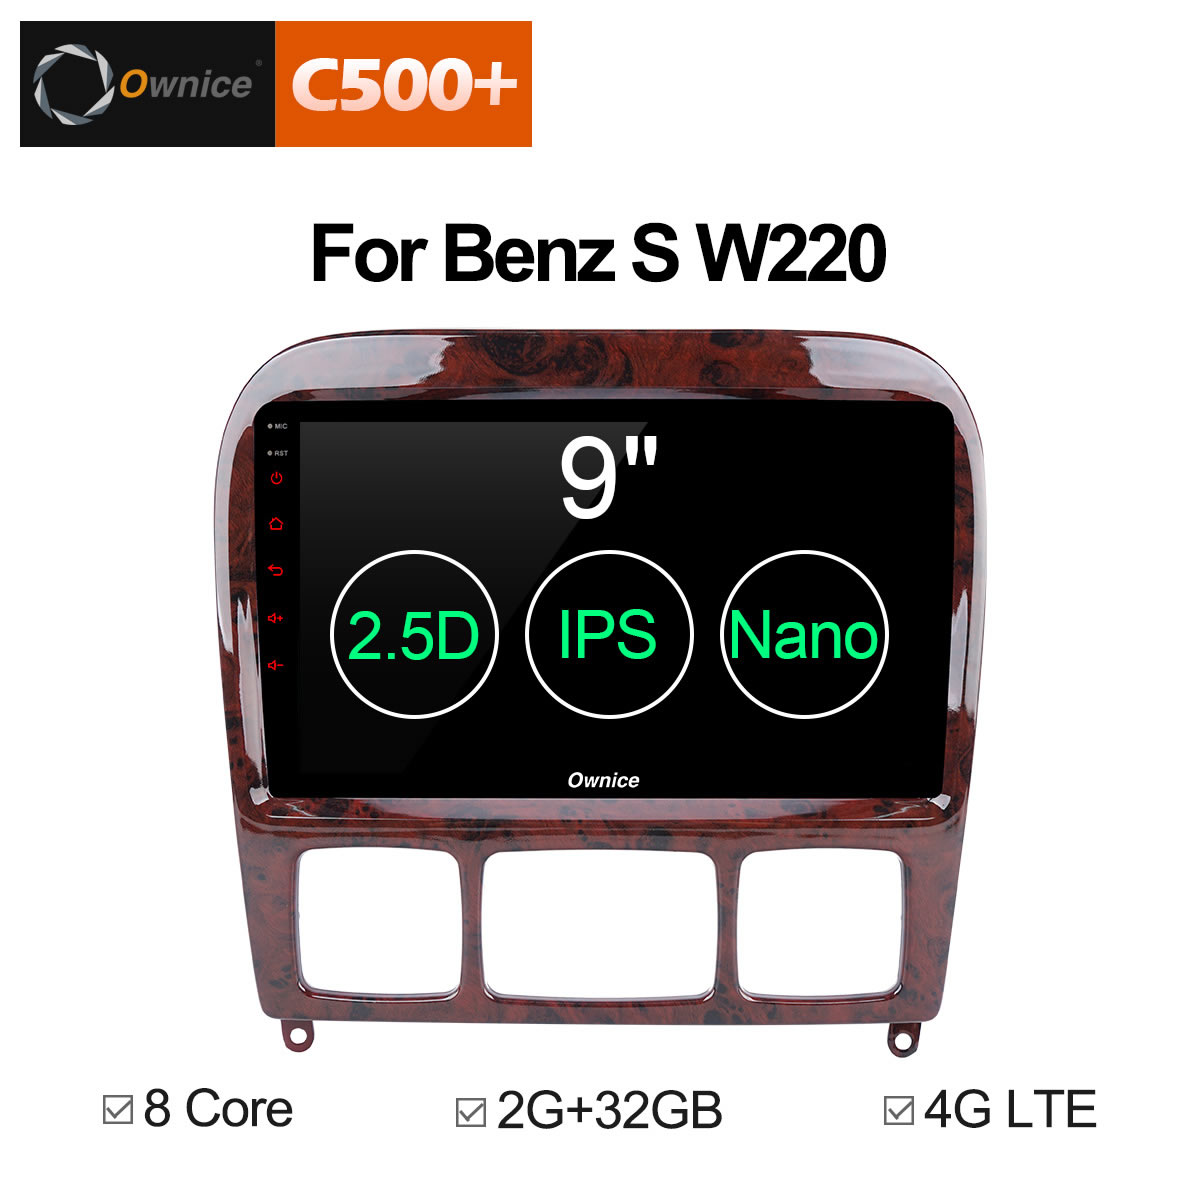 Ownice C500 + G10 2 Din Andorid 8.1 Lettore DVD Dell'automobile per Mercedes/Benz/W220/W215/ s280/S320/S350/S400/S500/CL600 Classe S GPS Radio